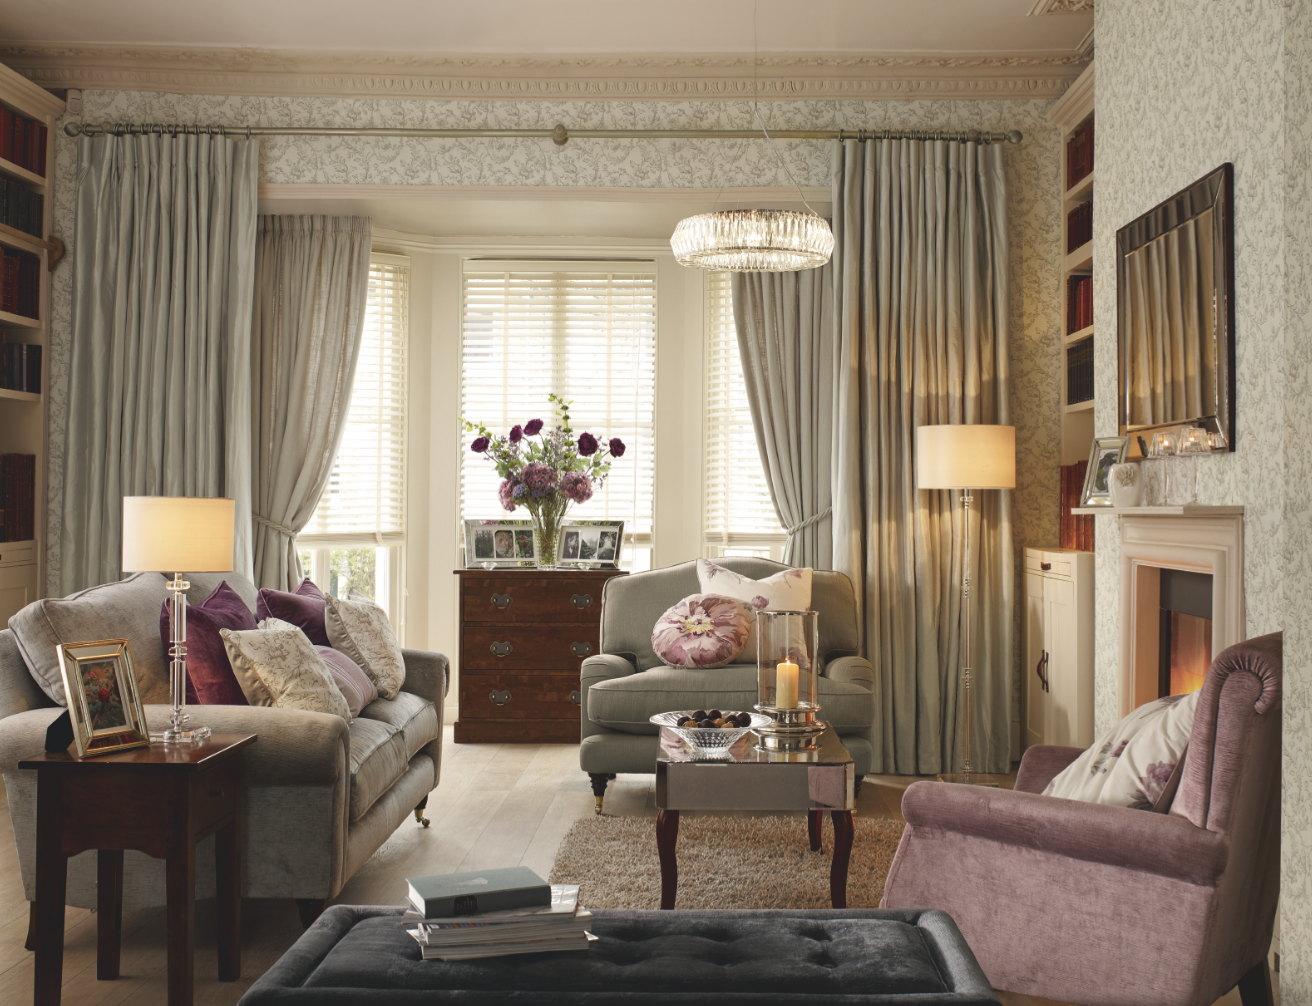 Peony Amethyst Collection Home Pinterest Peony Amethysts - Laura ashley living room purple